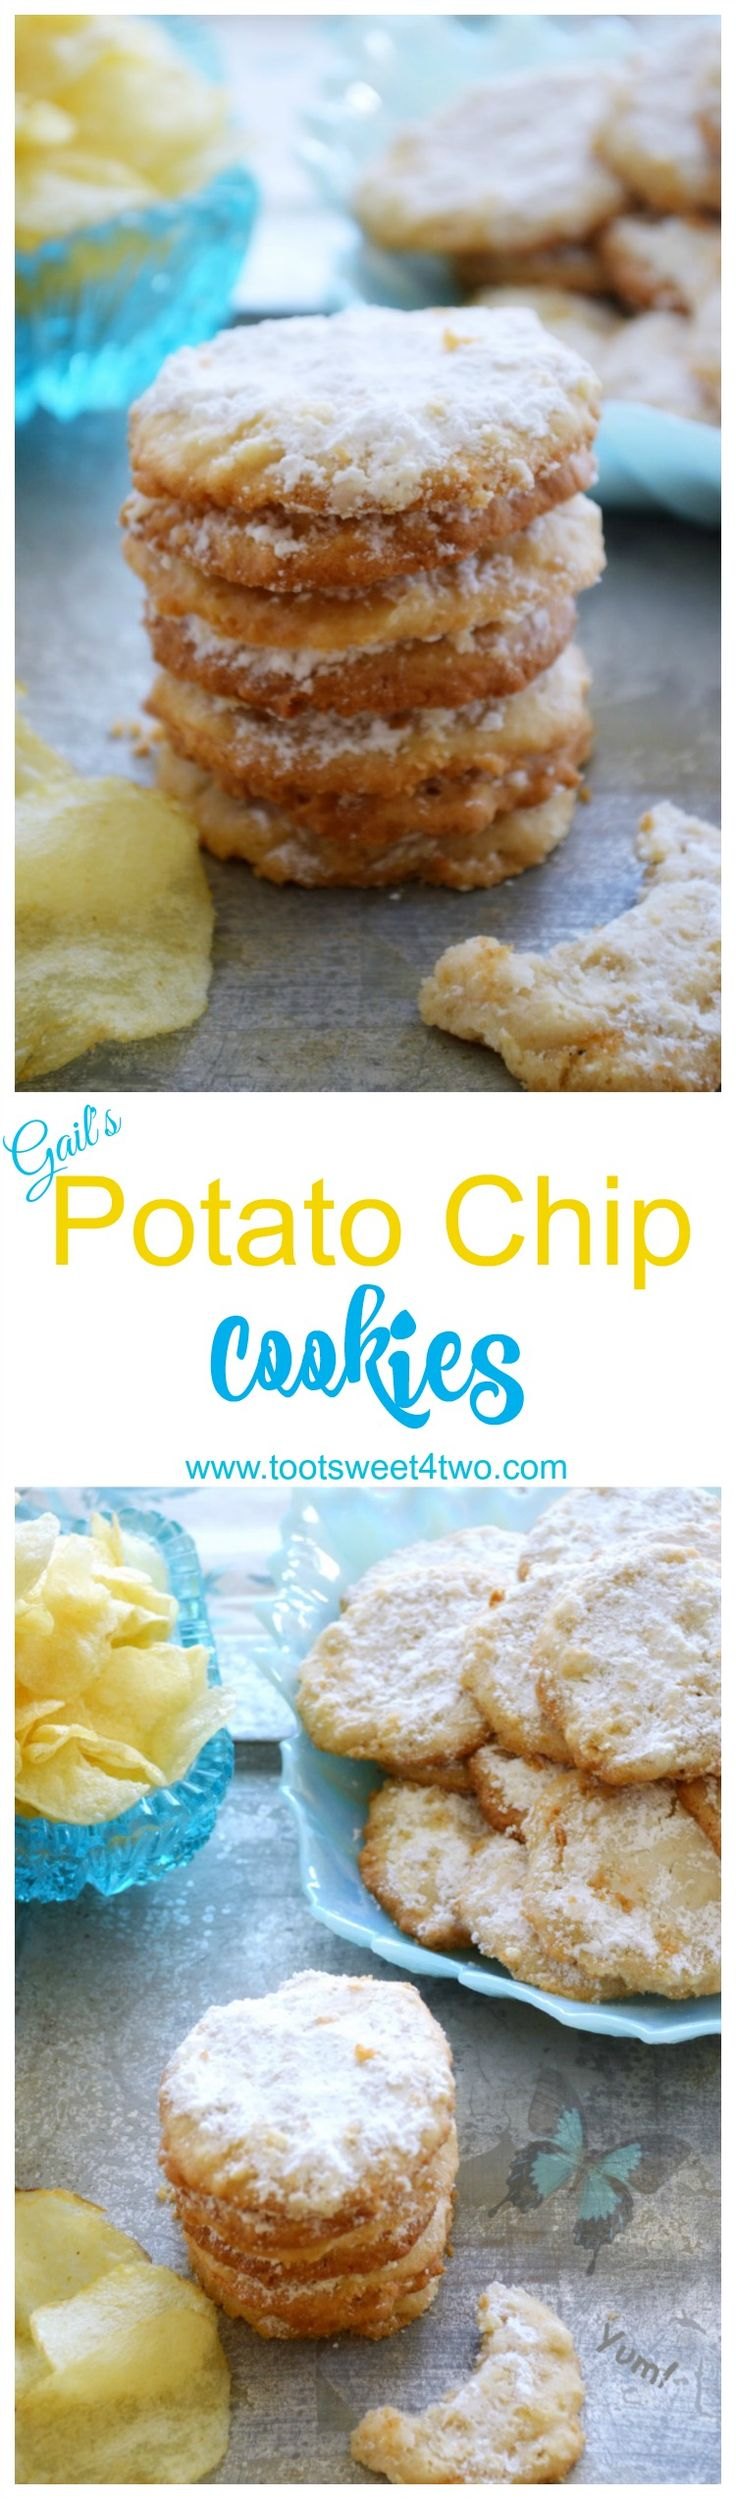 One of the best cookie recipes ever, Potato Chip Cookies are the perfect blend of sweet and salty. Made with Lays potato chips, these easy homemade cookies are sweet, buttery and delicious with just the right amount of salt. If you think your family already has a favorite recipe for cookies, think again! Addicting (in a good way), this potato chip cookie recipe will fast become a family favorite. Delicious any time of year, these cookies are perfect Christmas cookies to share...